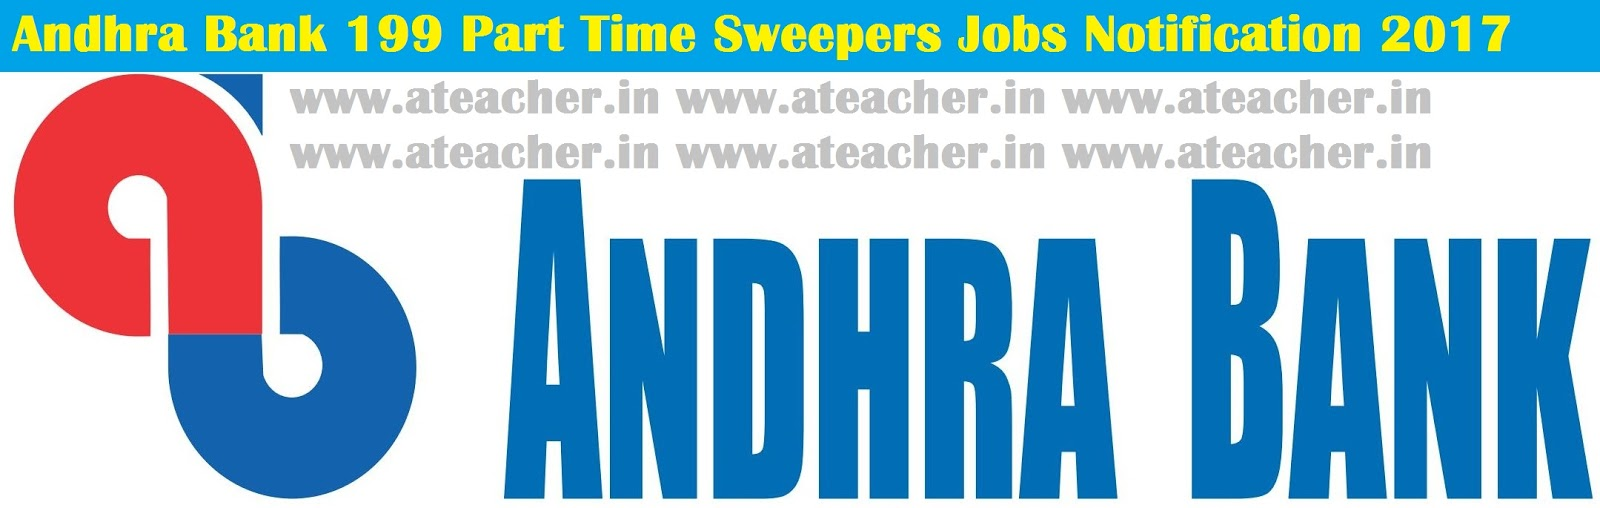 andhra-bank-recruitments-2017-andhra-bank-199-part-time-swweper-jobs-notification-2017